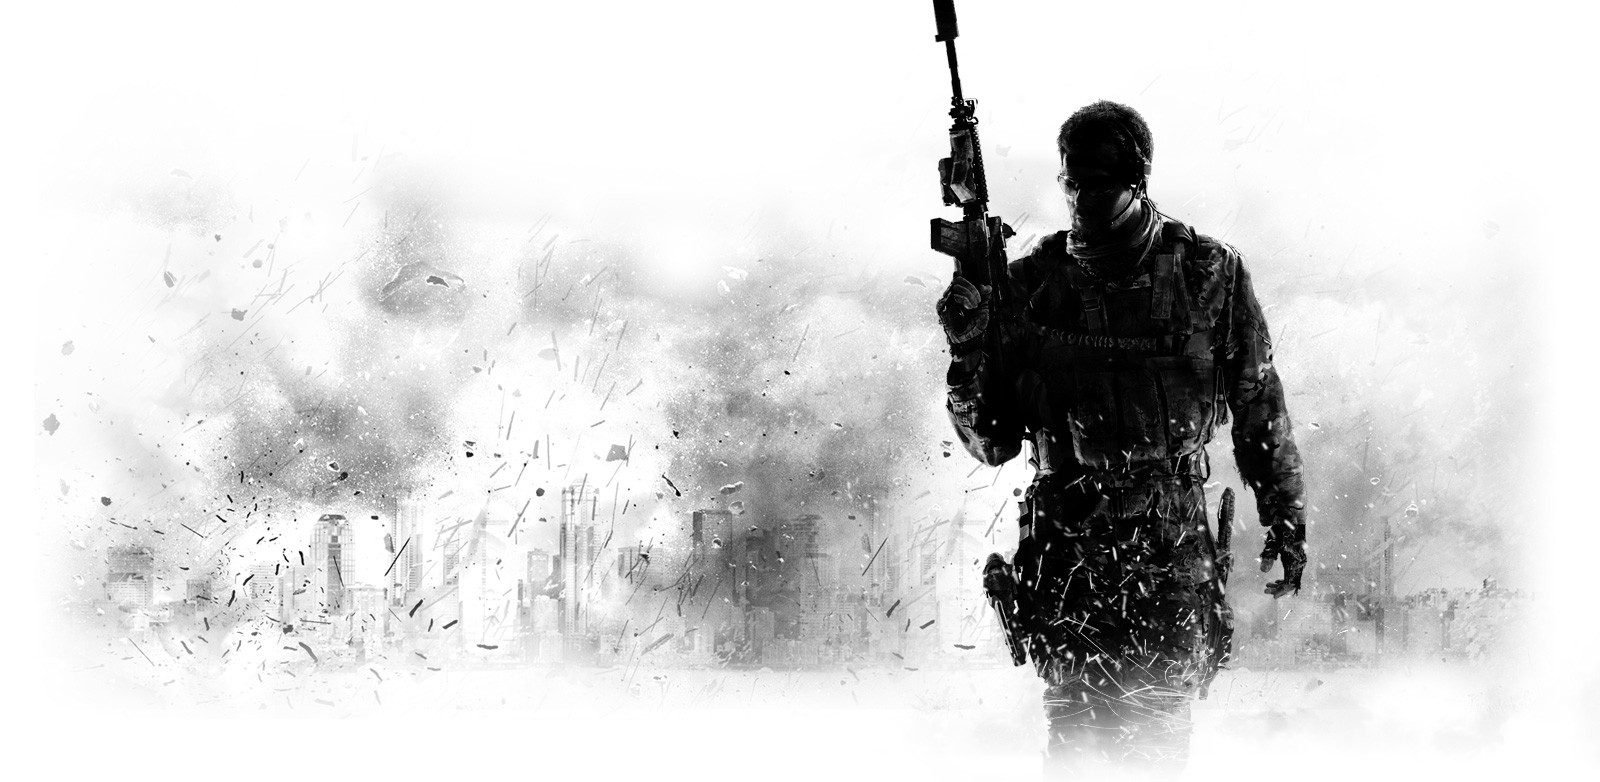 Comic books movies games blog everything related to - Call of duty warfare wallpaper ...